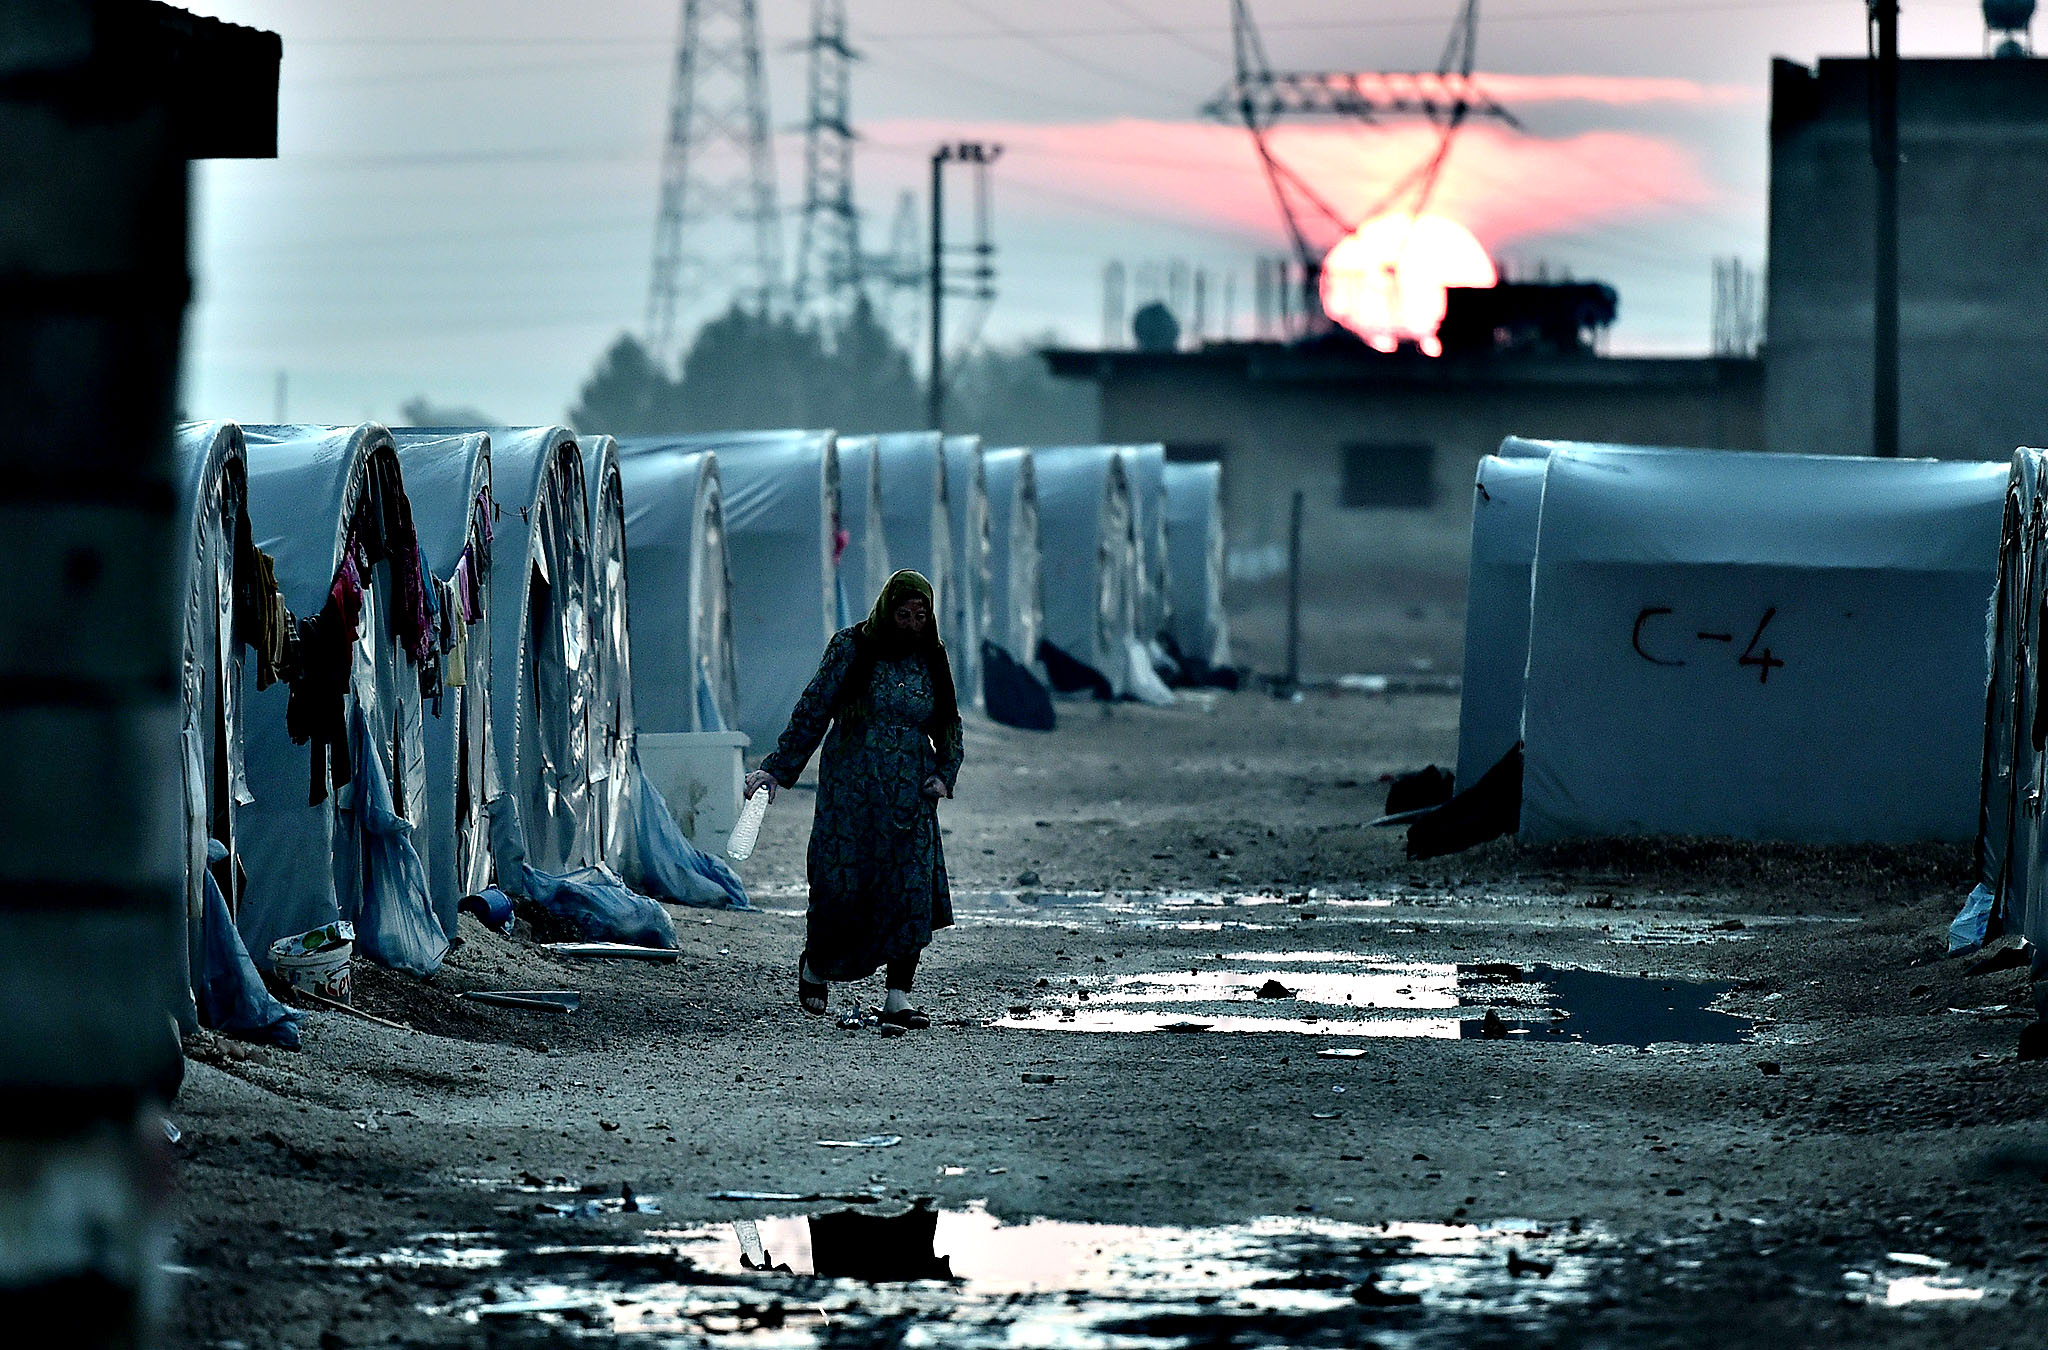 A Syrian Kurdish woman walks in a refugee camp in the town of Suruc, Sanliurfa province, on October 17, 2014. Kurdish rebels have been infuriated by the lack of action by Turkey against Islamic State (IS) jihadists trying to take the mainly Kurdish town of Kobane just across the Syrian border.